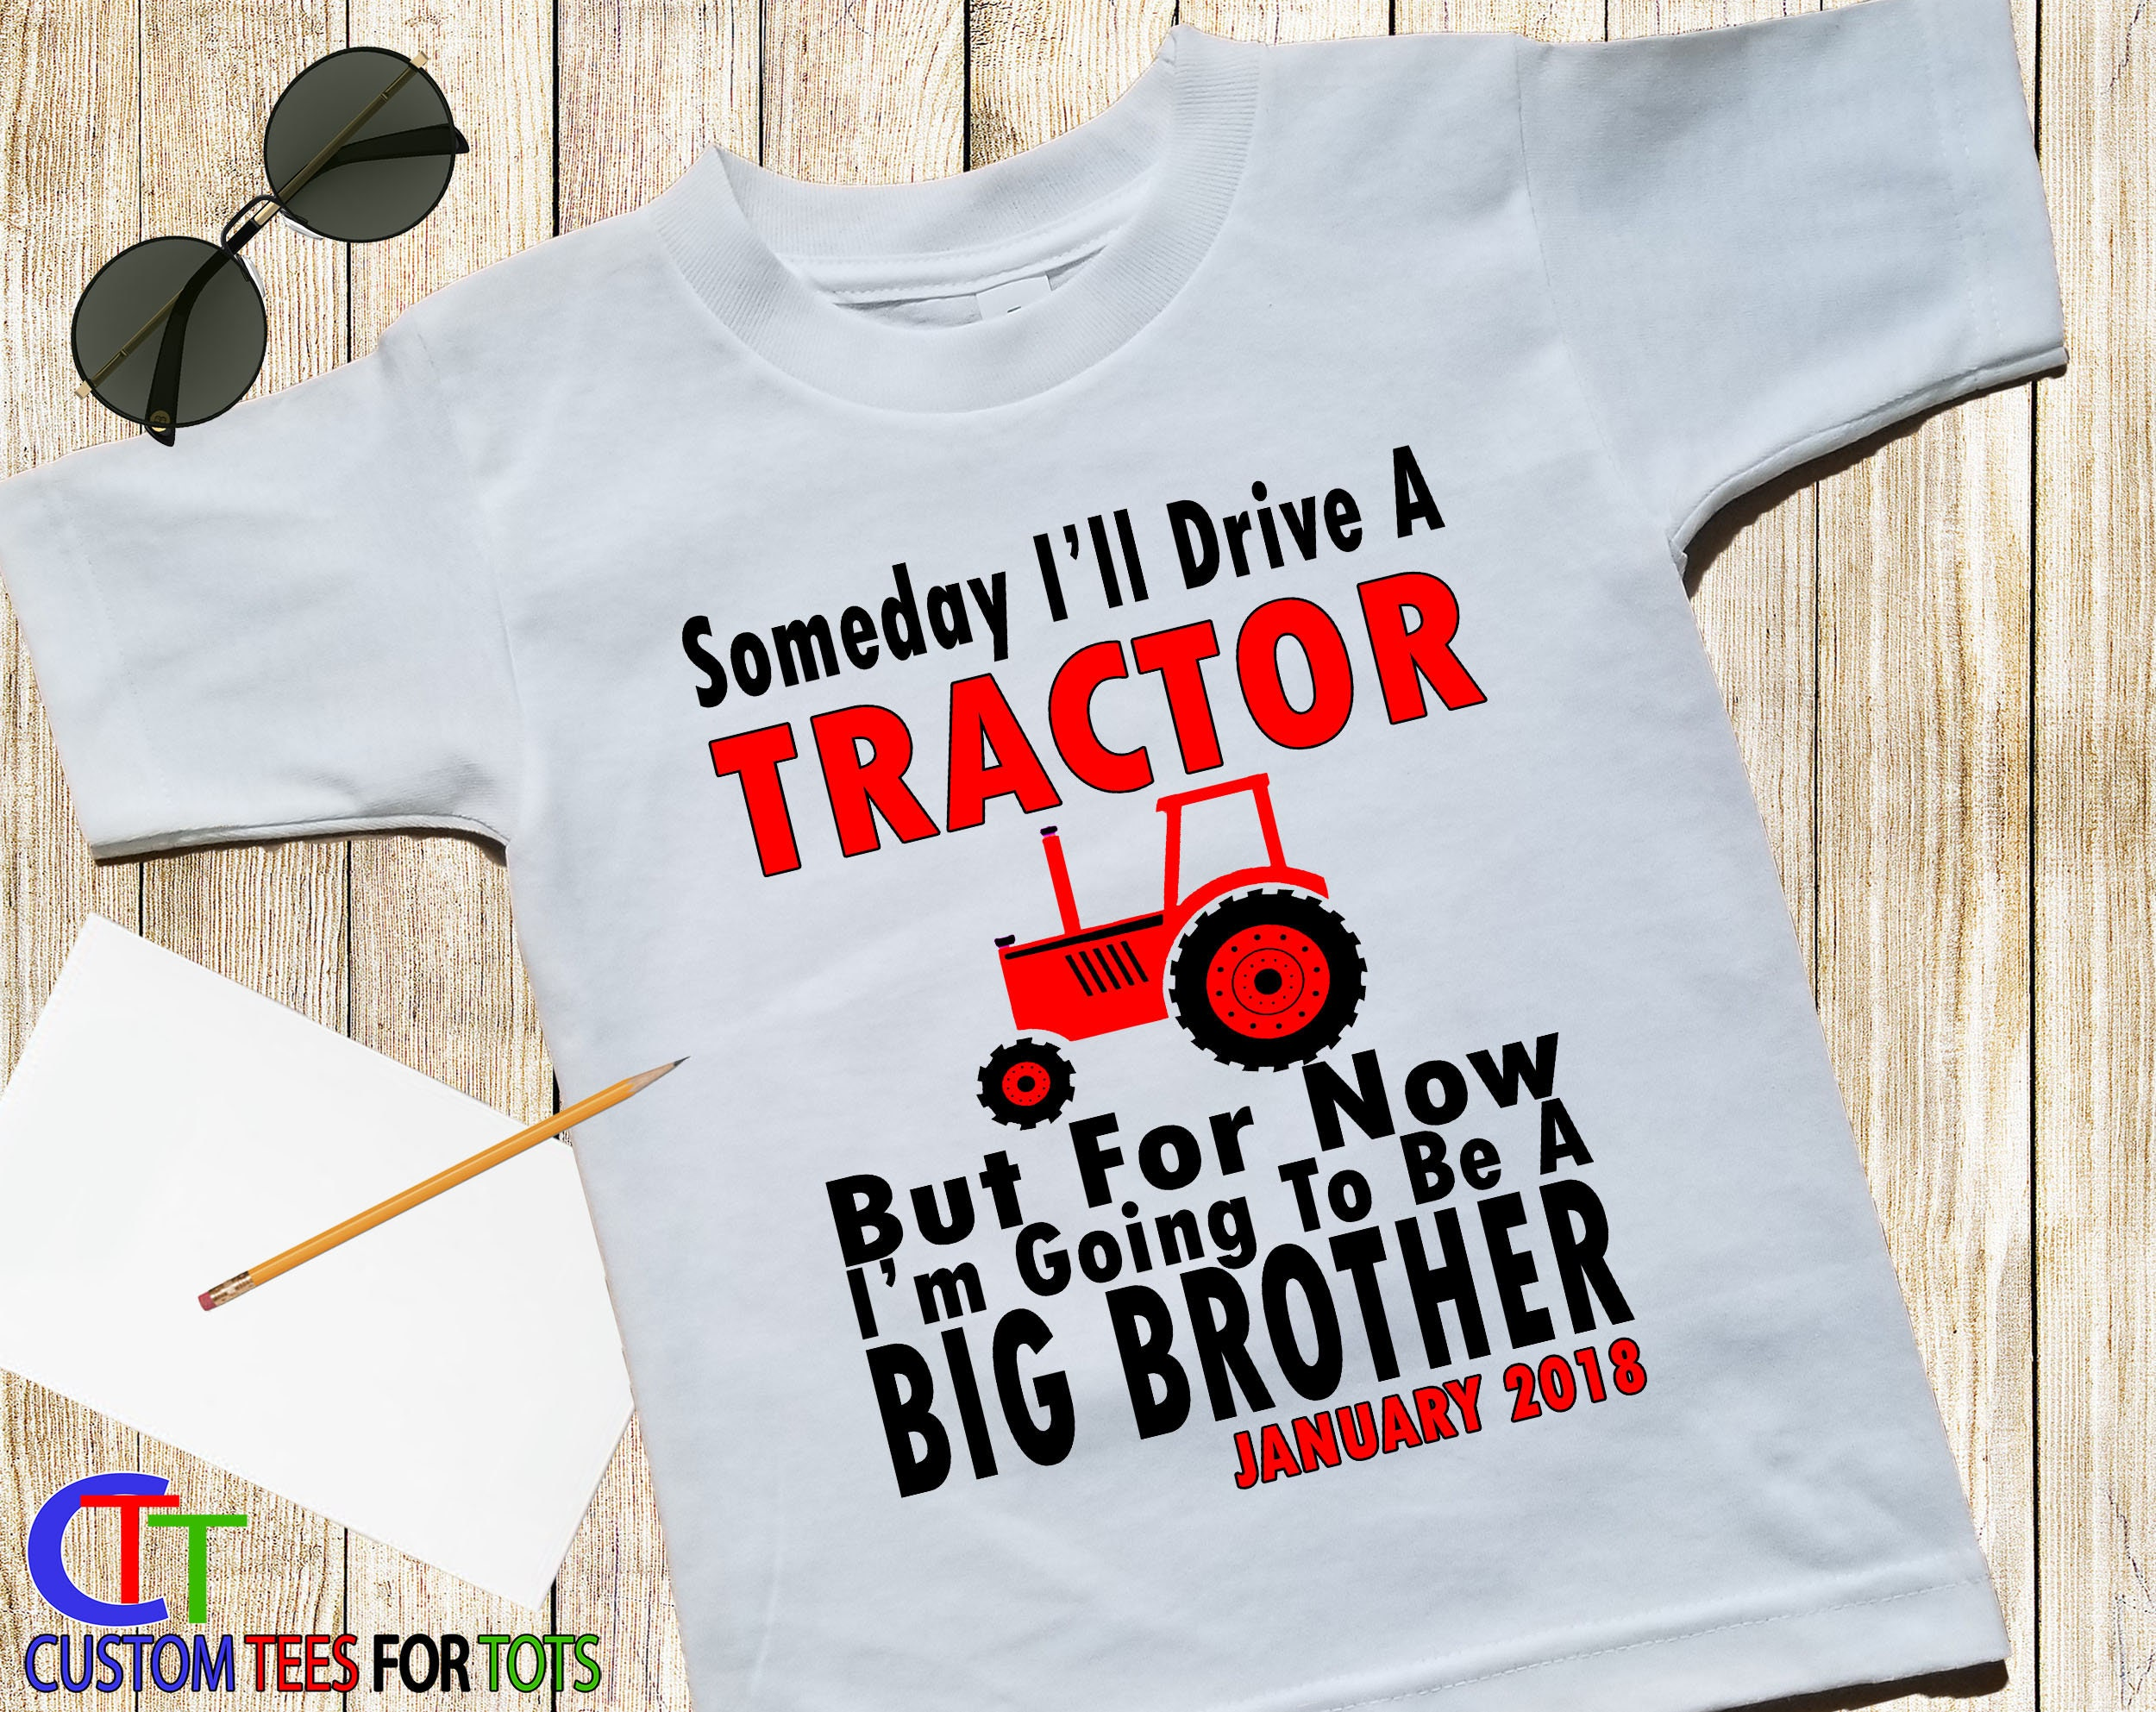 6ab877e9 Big Brother Shirt - Red Tractor Big Brother Shirt - Someday i'll Drive A  Tractor but for now i will be a Big Brother Shirt